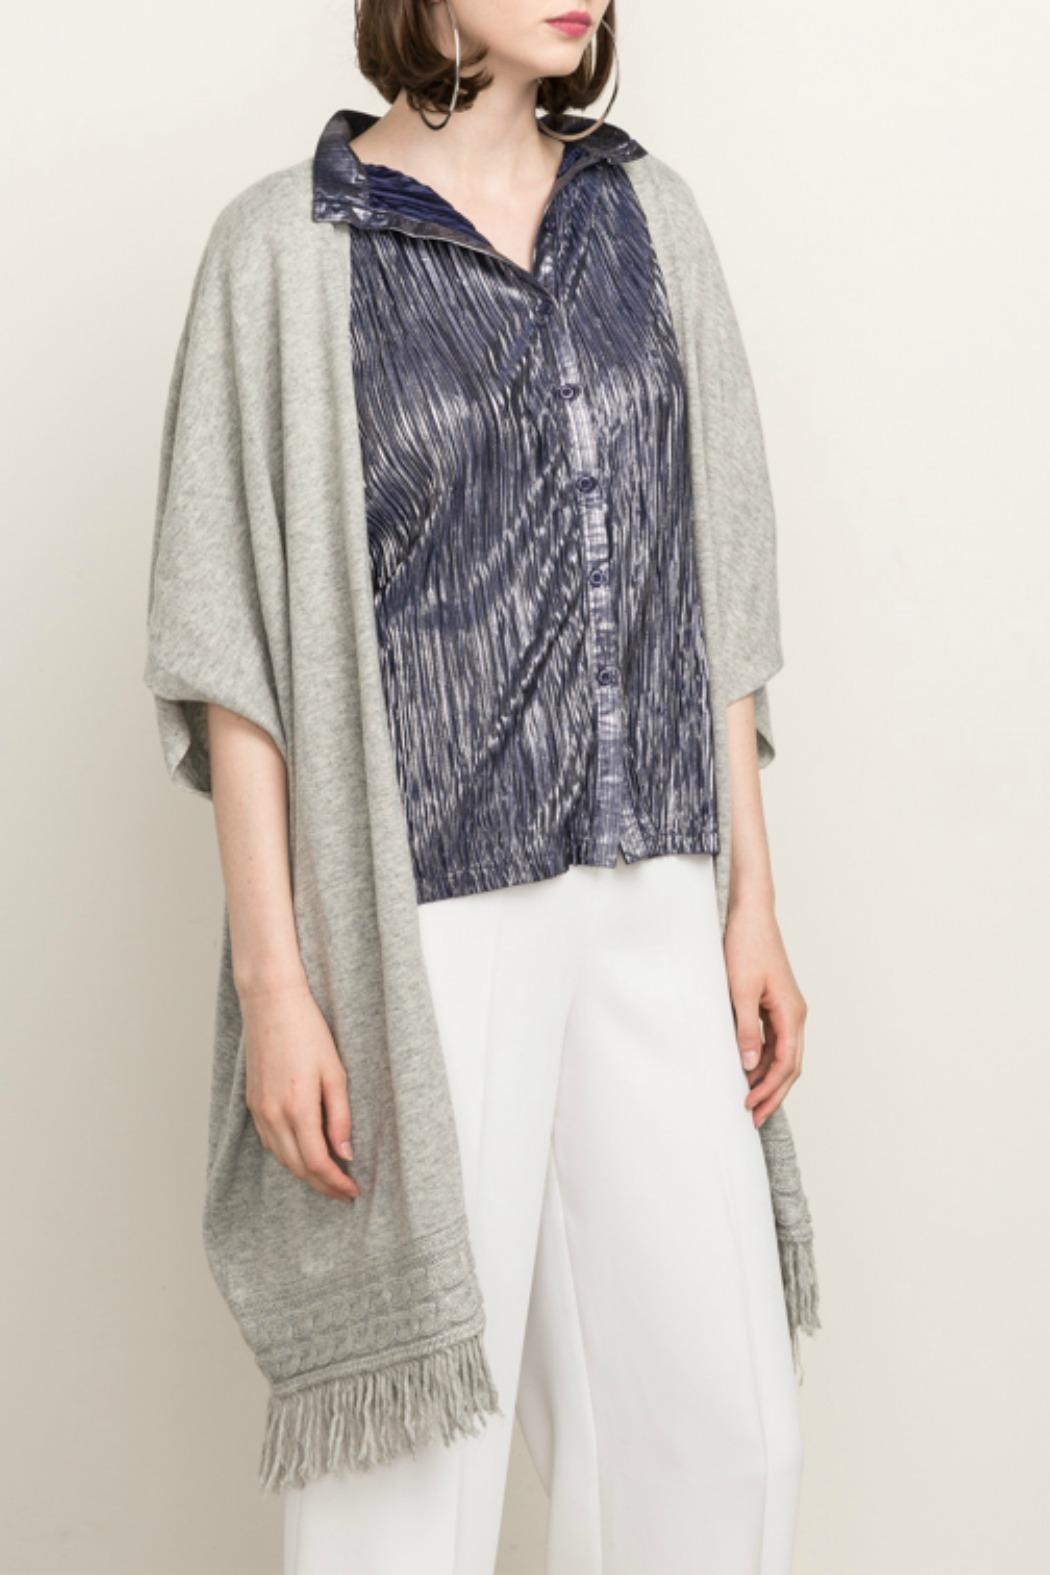 Mystree Grey Fringe Cardigan - Main Image